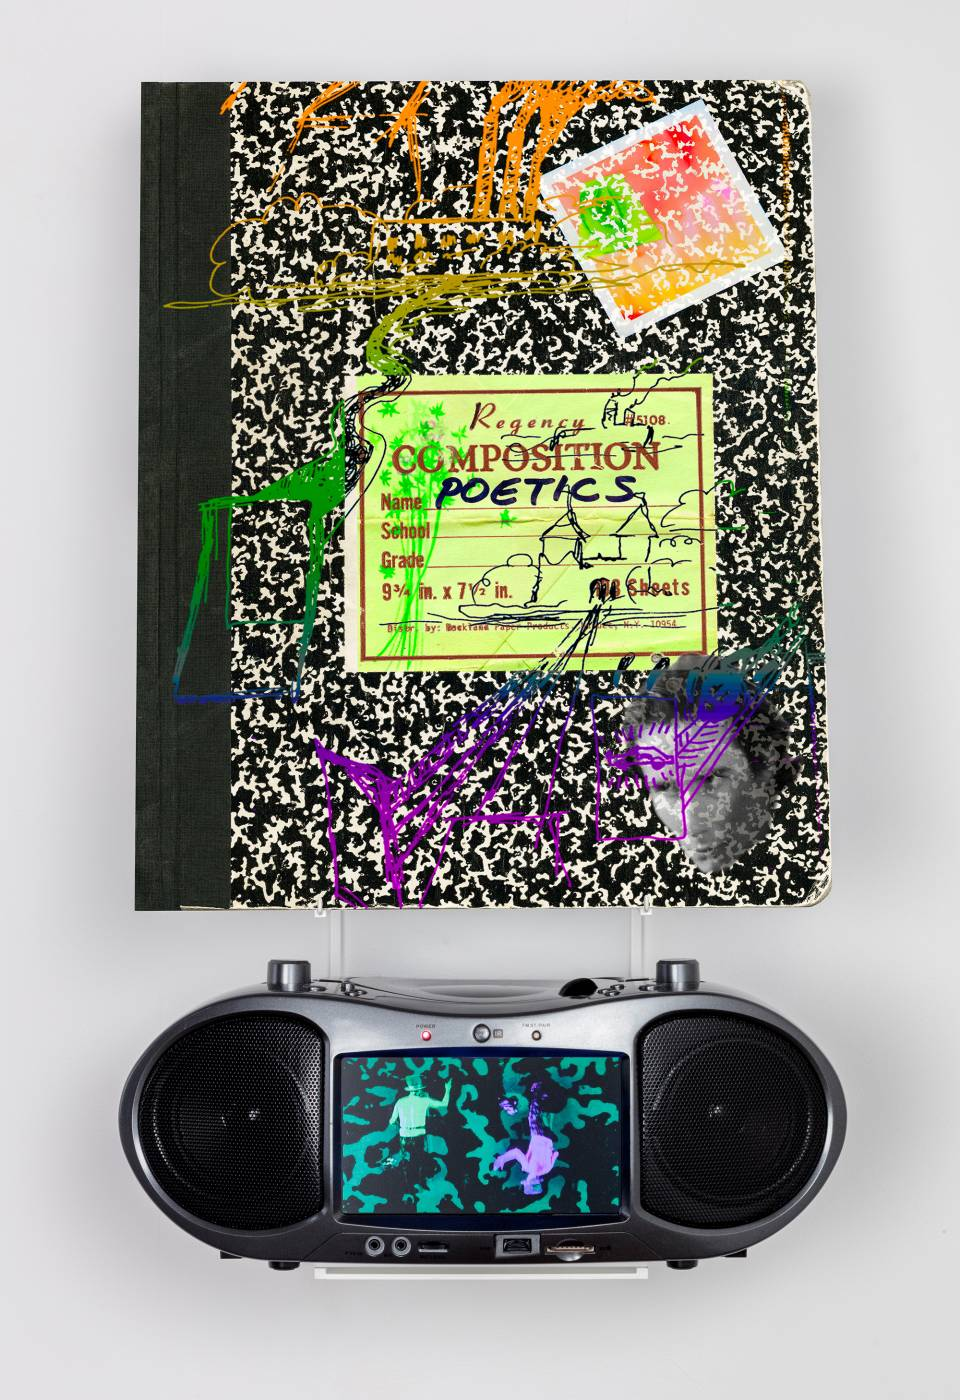 A notebook and a boombox